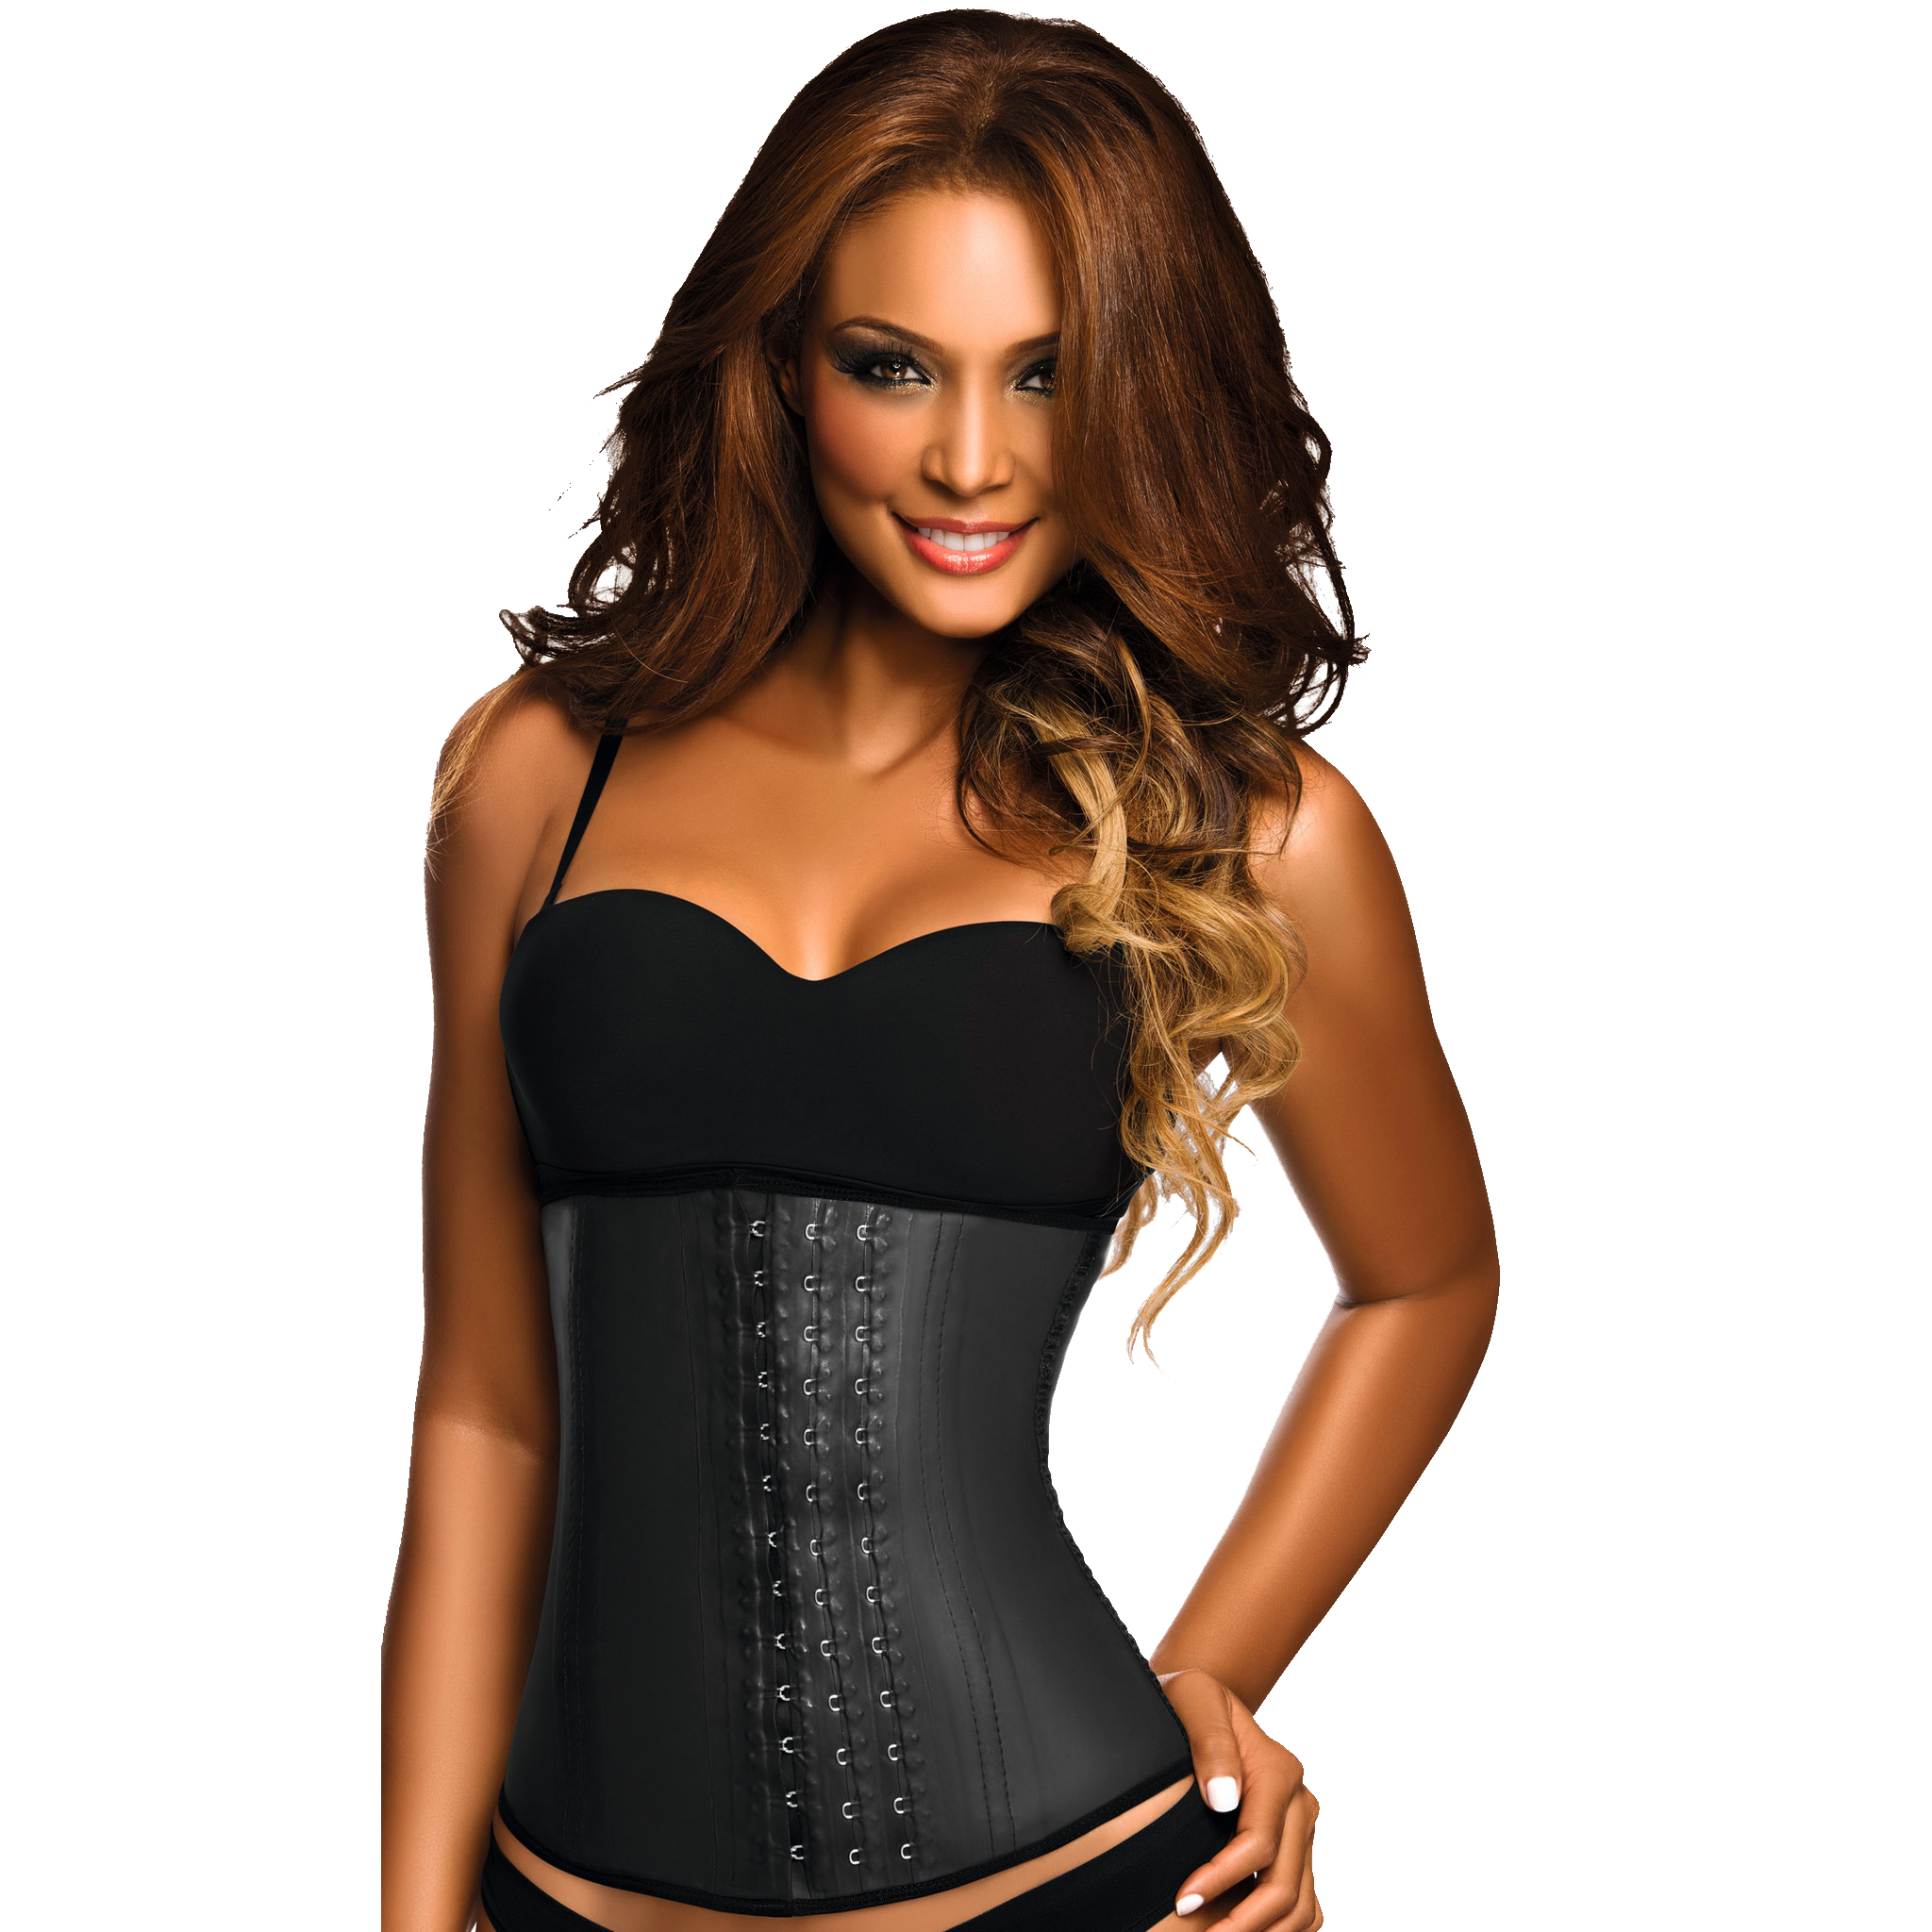 1c98b83abc Weight Loss Accessories - Wholesale Clothing UK - Curvesline